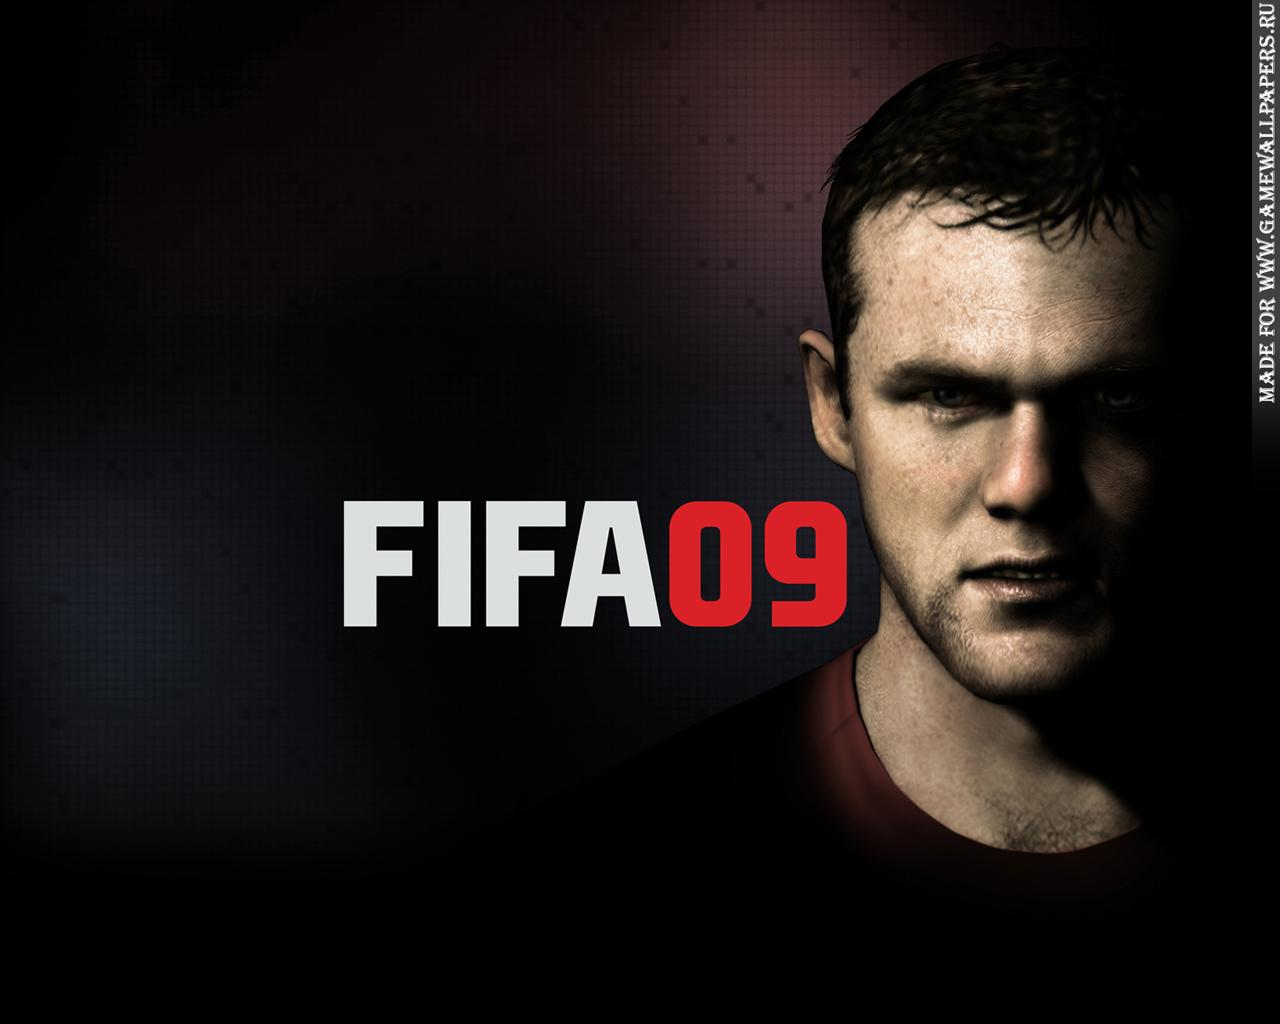 Fifa 09 Wallpapers - Games Wallpapers #1